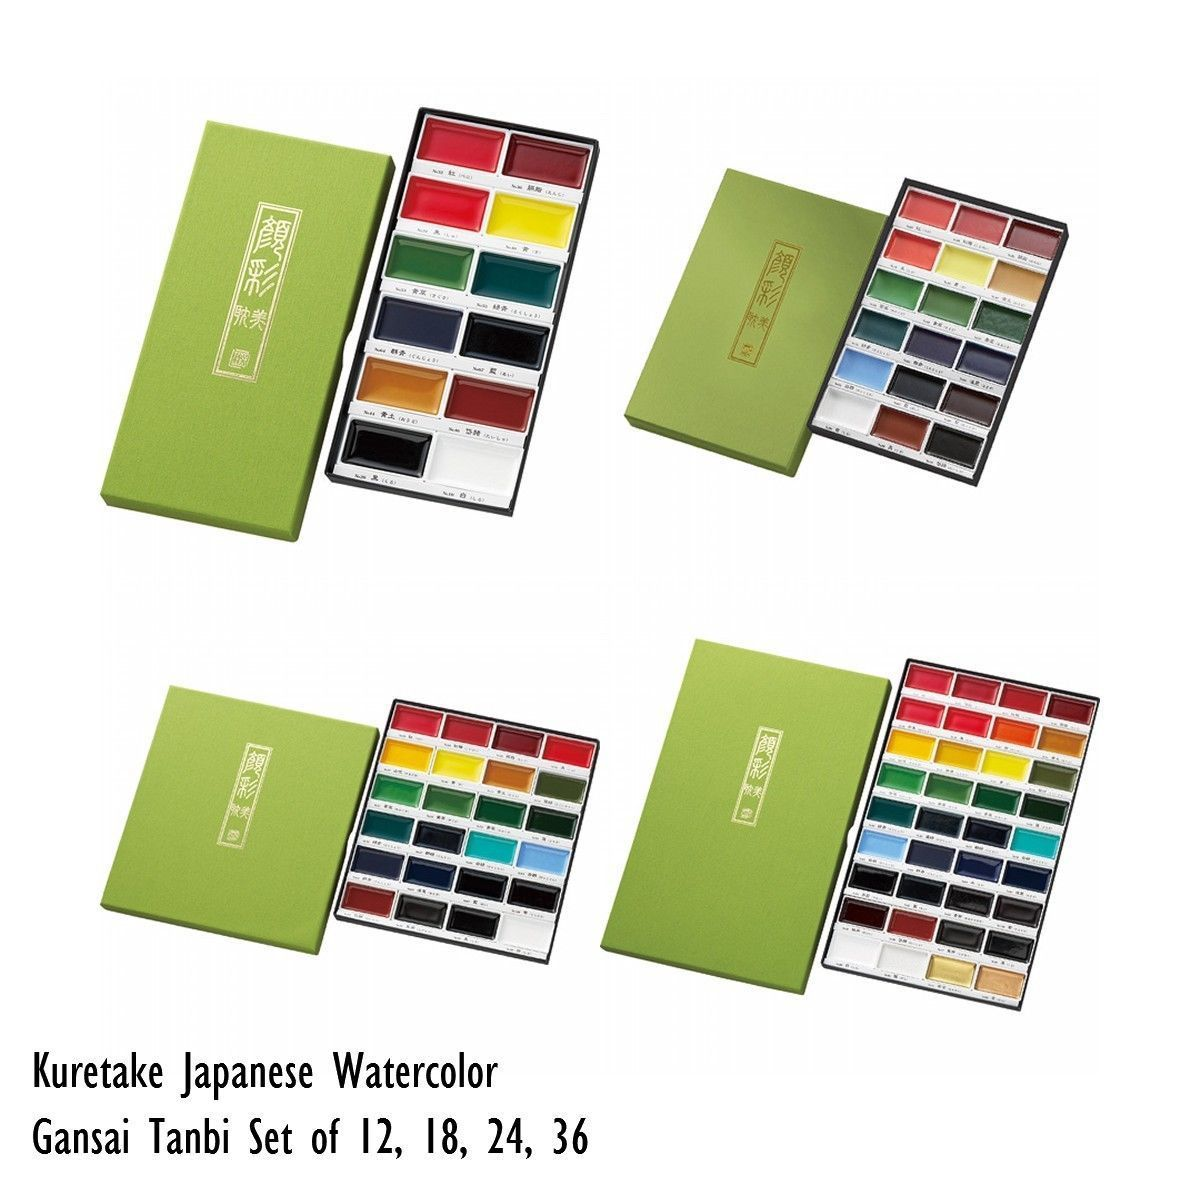 Details About New Kuretake Japanese Watercolor Paint Gansai Tanbi